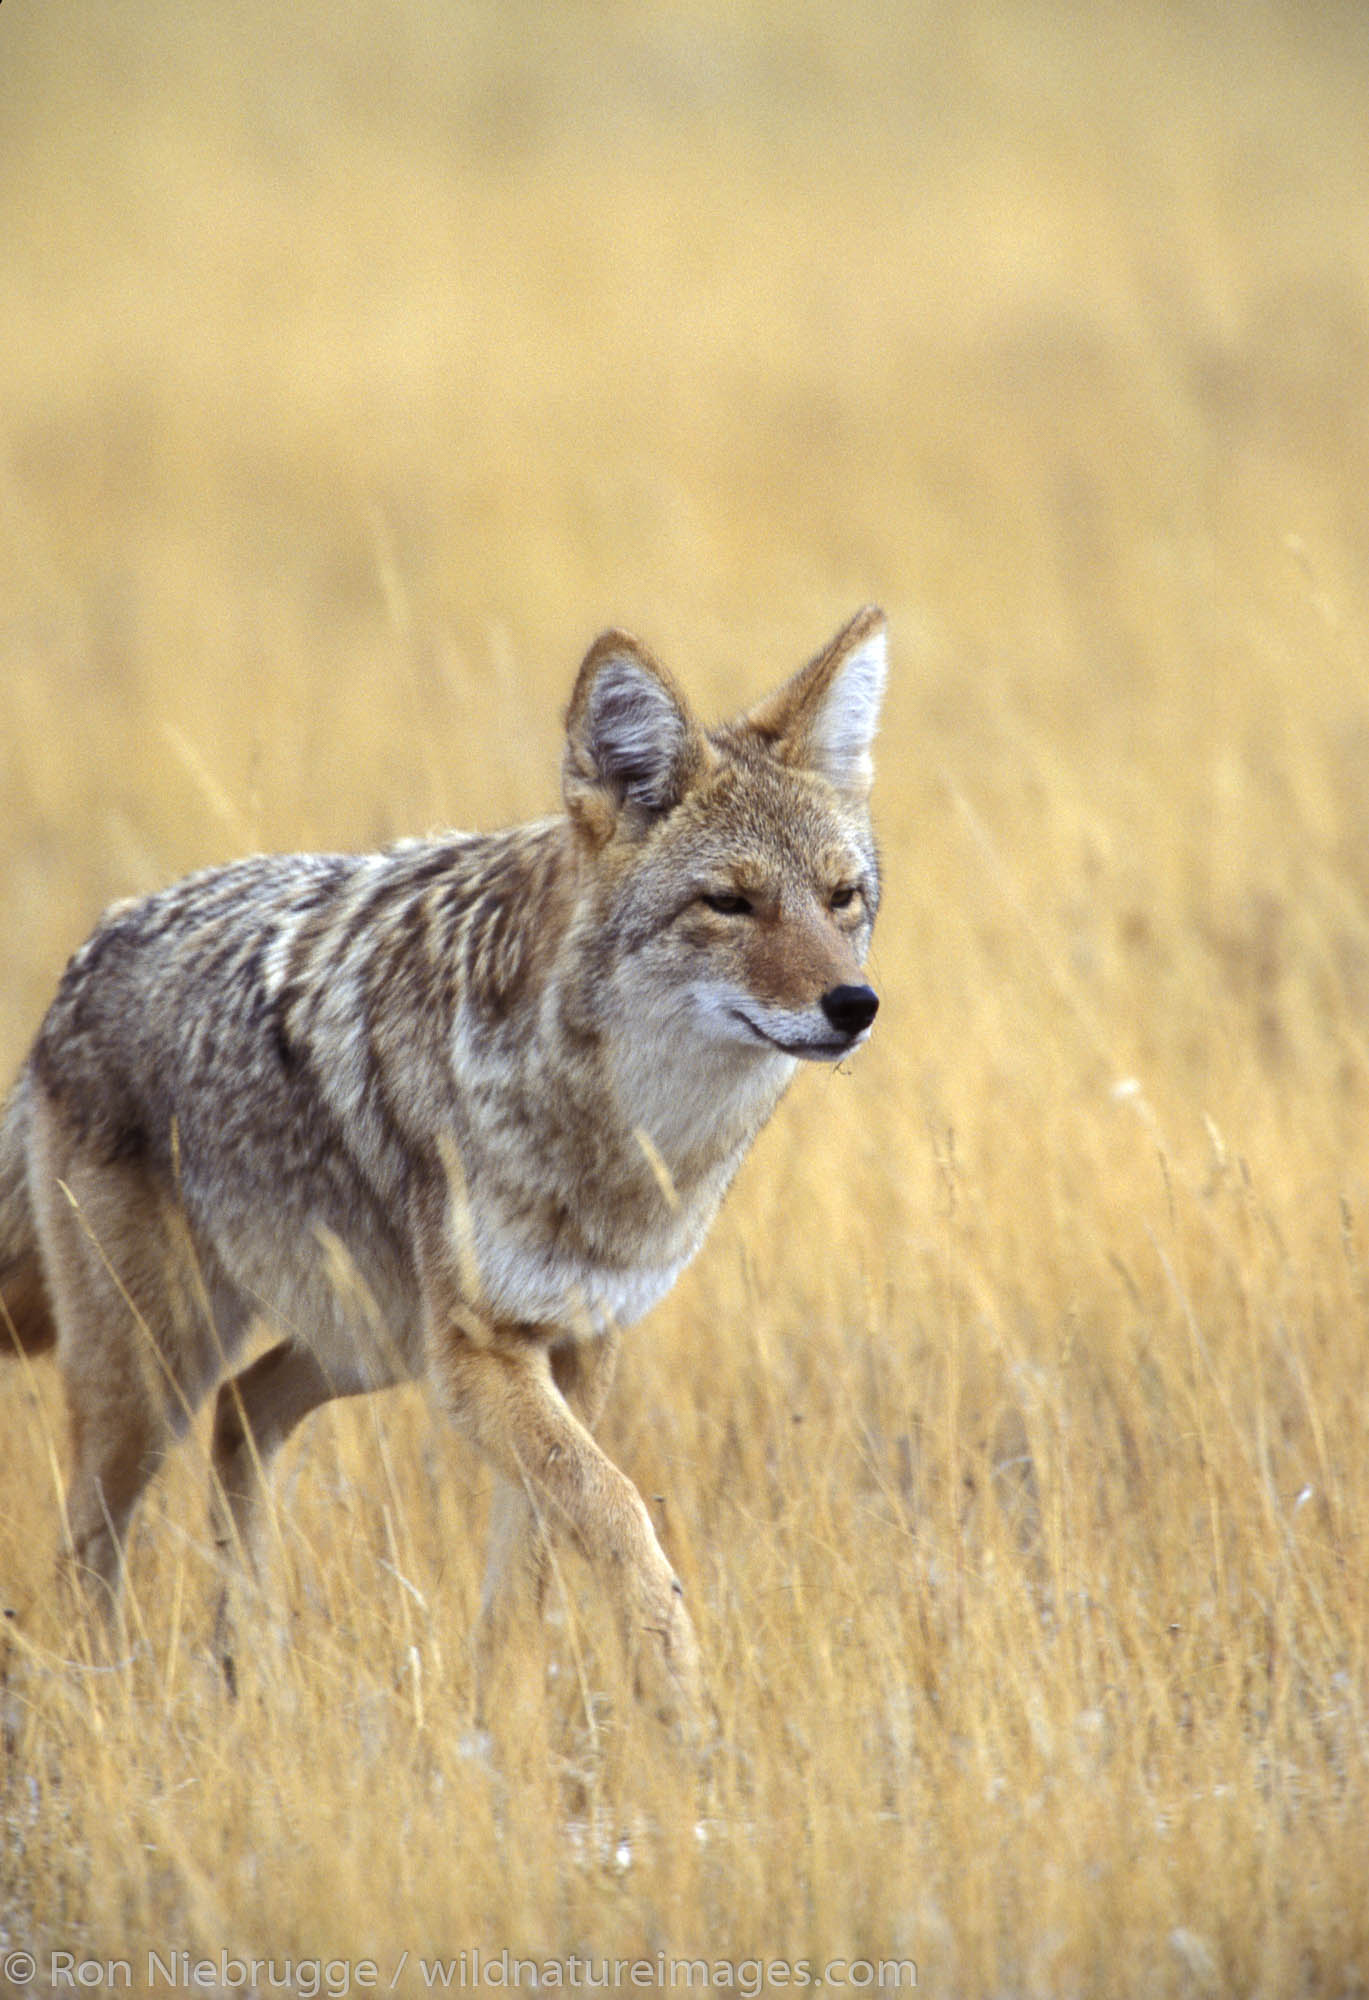 A Coyote in Yellowstone National Park, Wyoming.